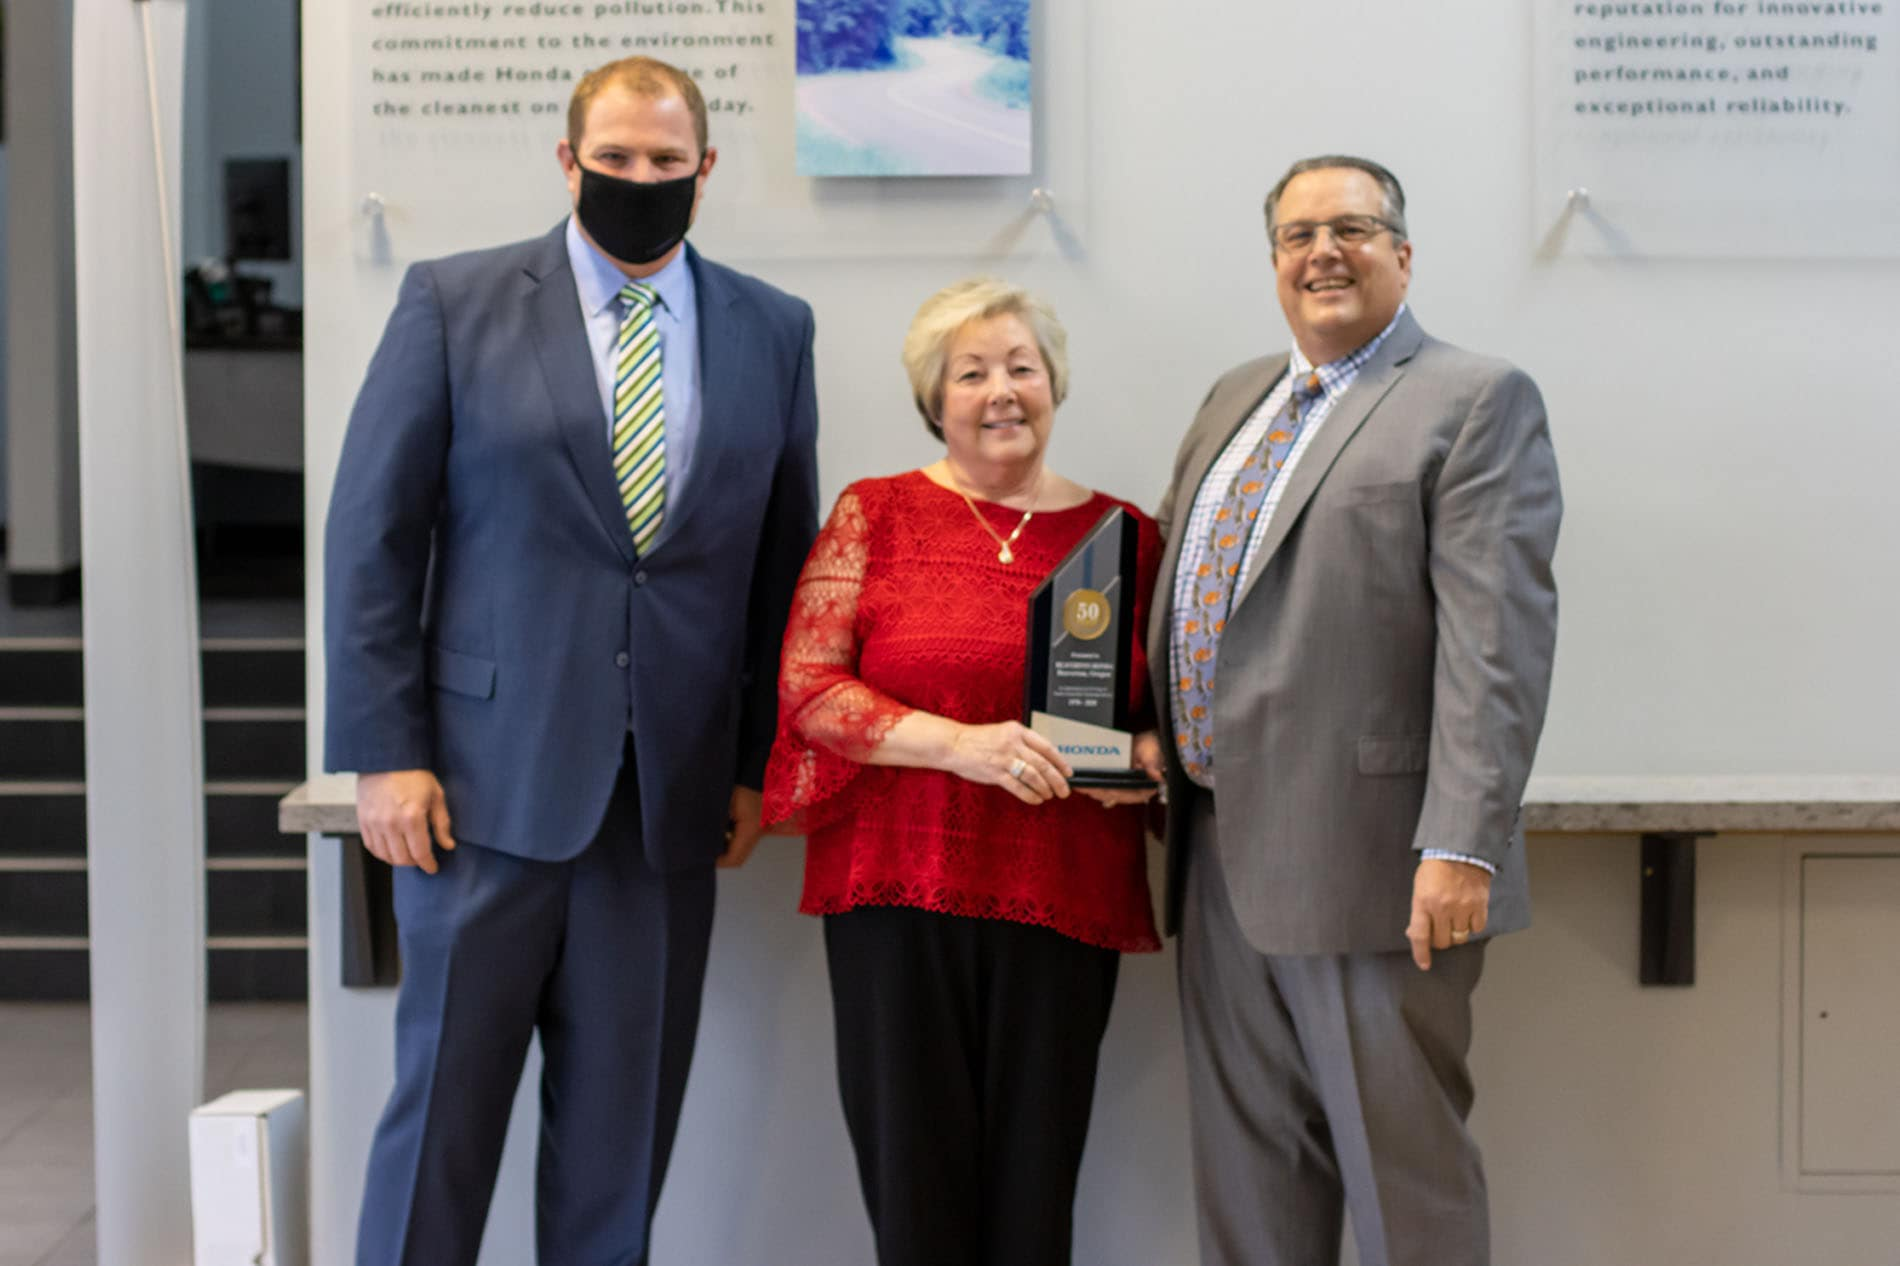 Honda representative, Don Laine, stands with owners, Sharon Lenz and Bob Lanphere, Jr holding the fifty years as a Honda Dealer Award at Beaverton Honda in Oregon